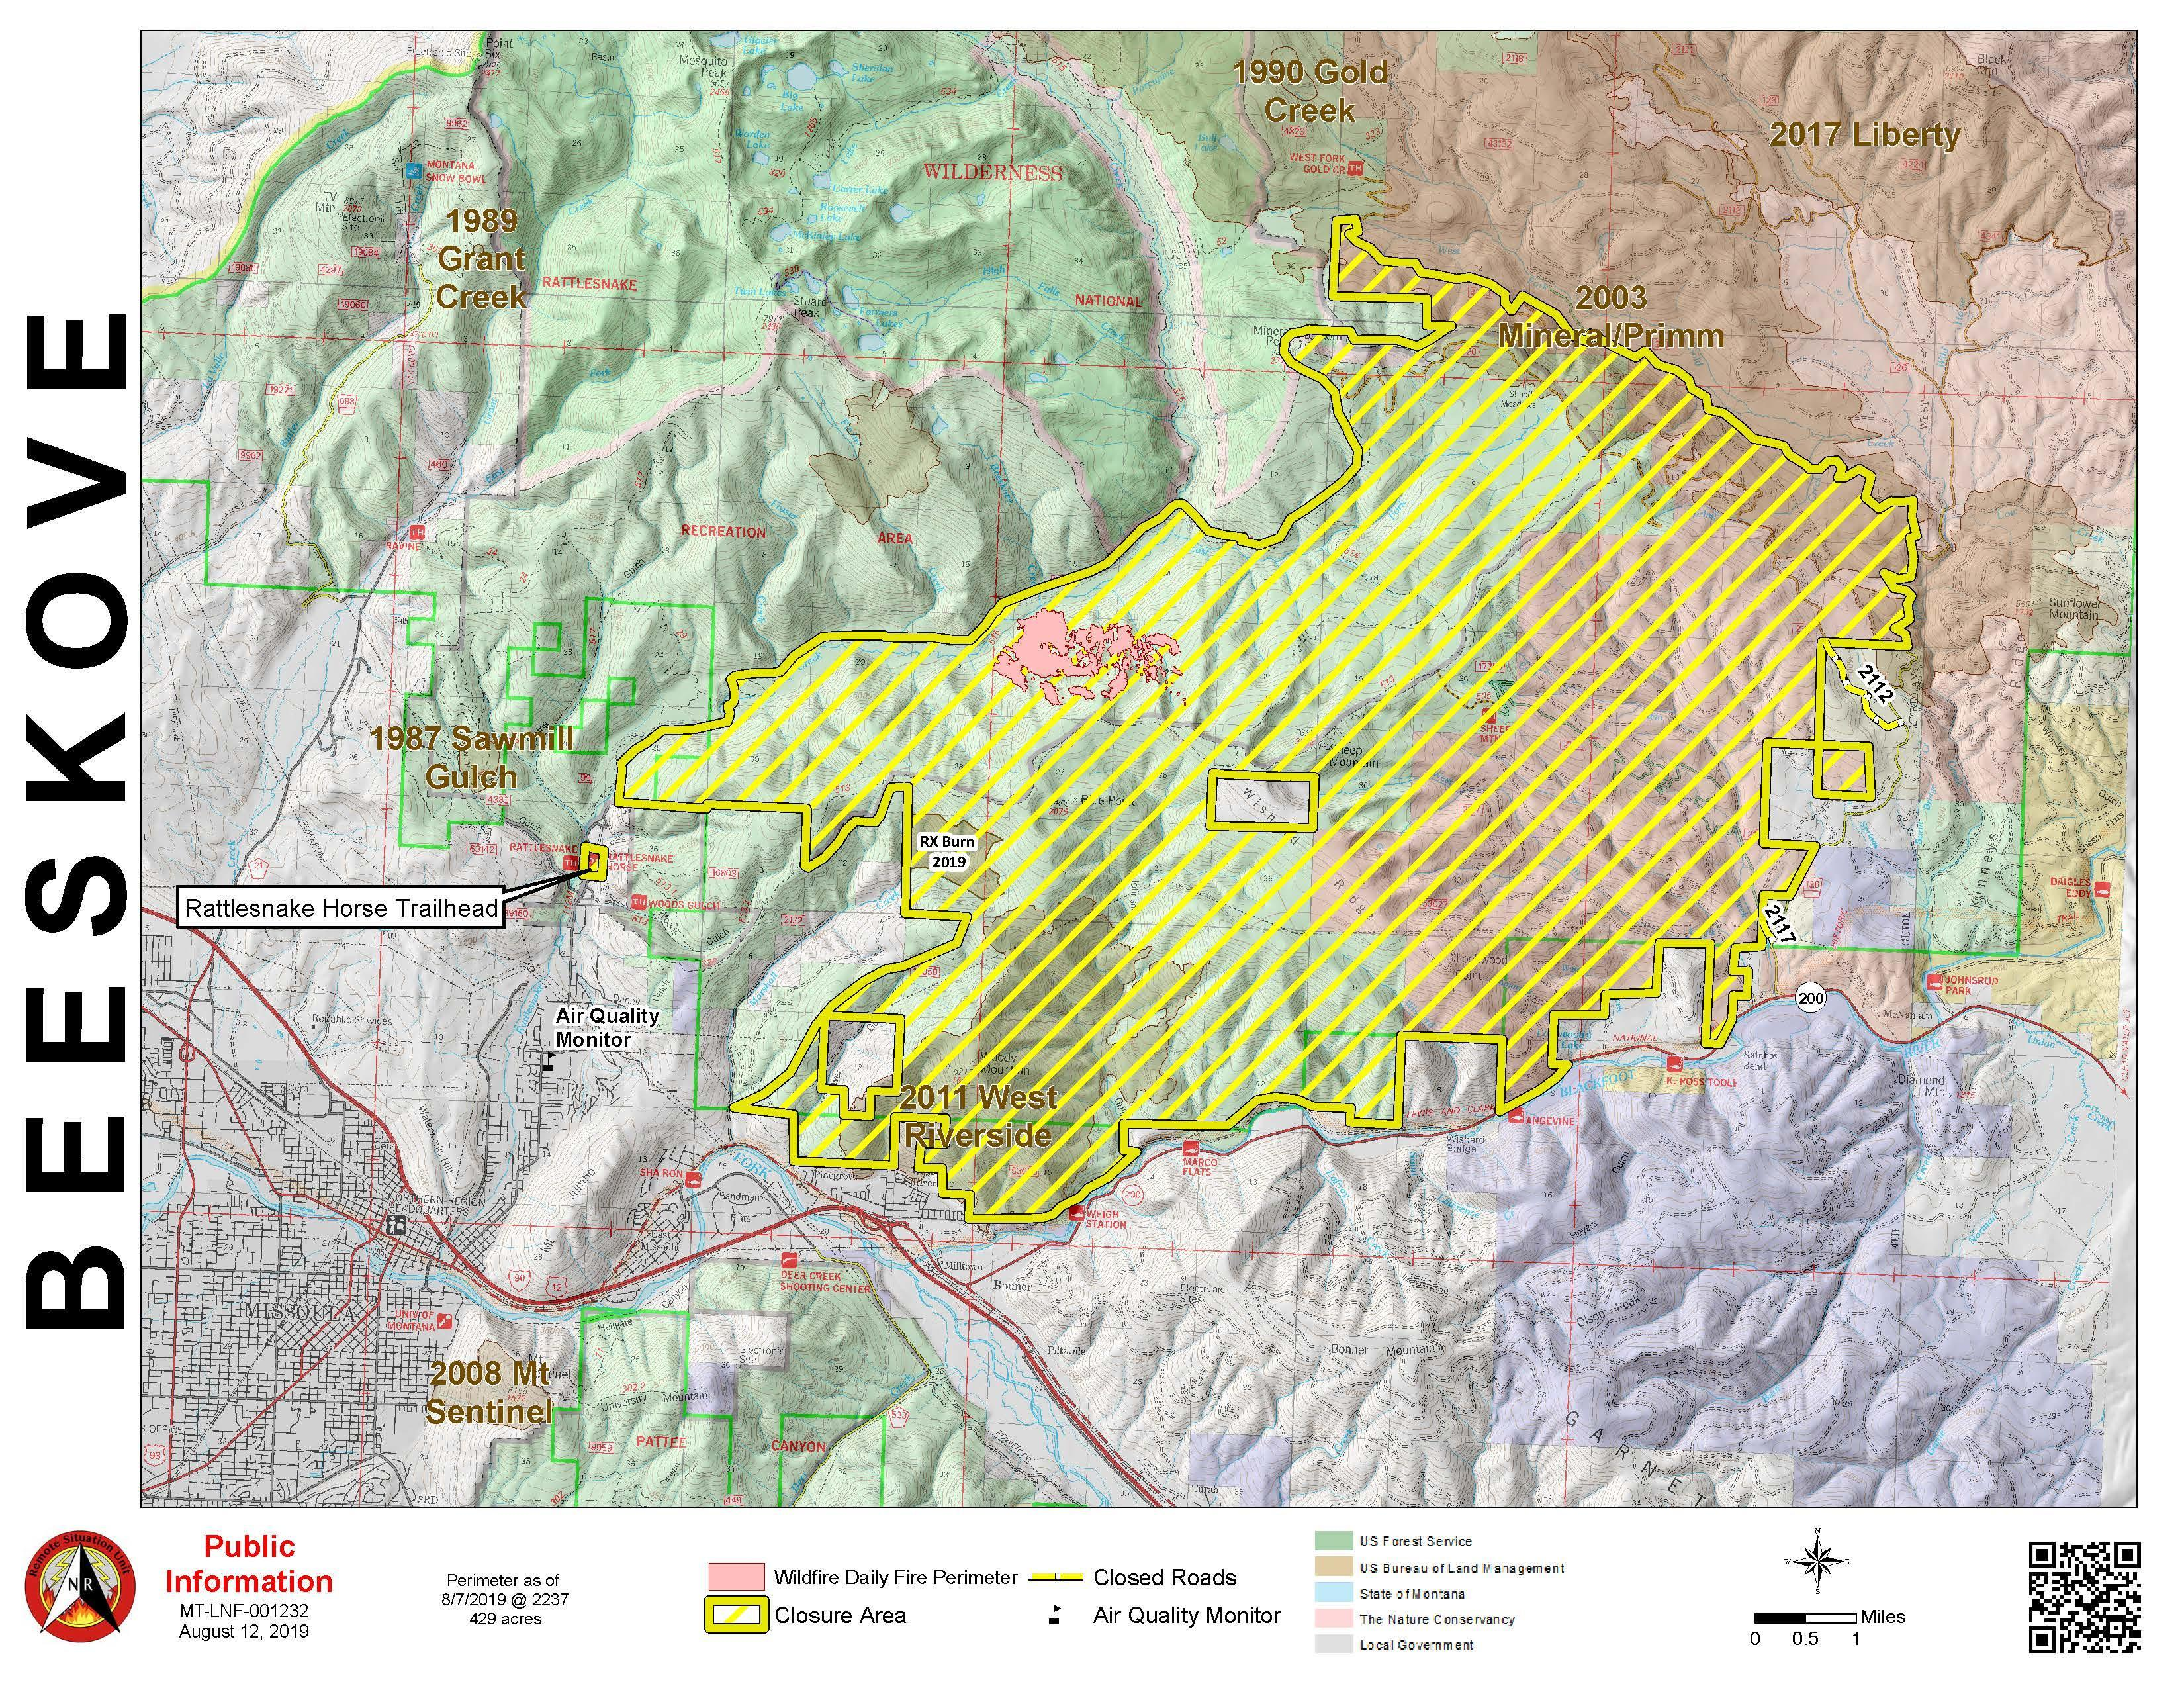 Map with pink polygon denoting fire perimeter and a yellow polygon denoting the closure area.